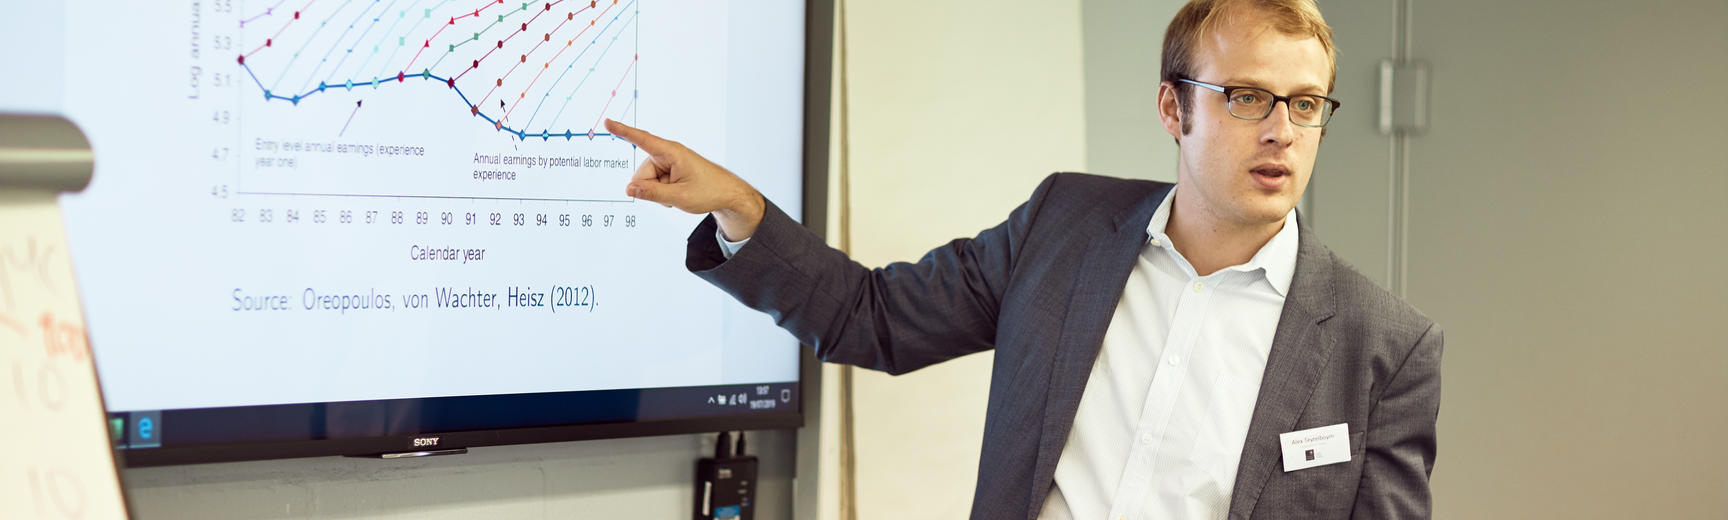 Lecturer points to presentation